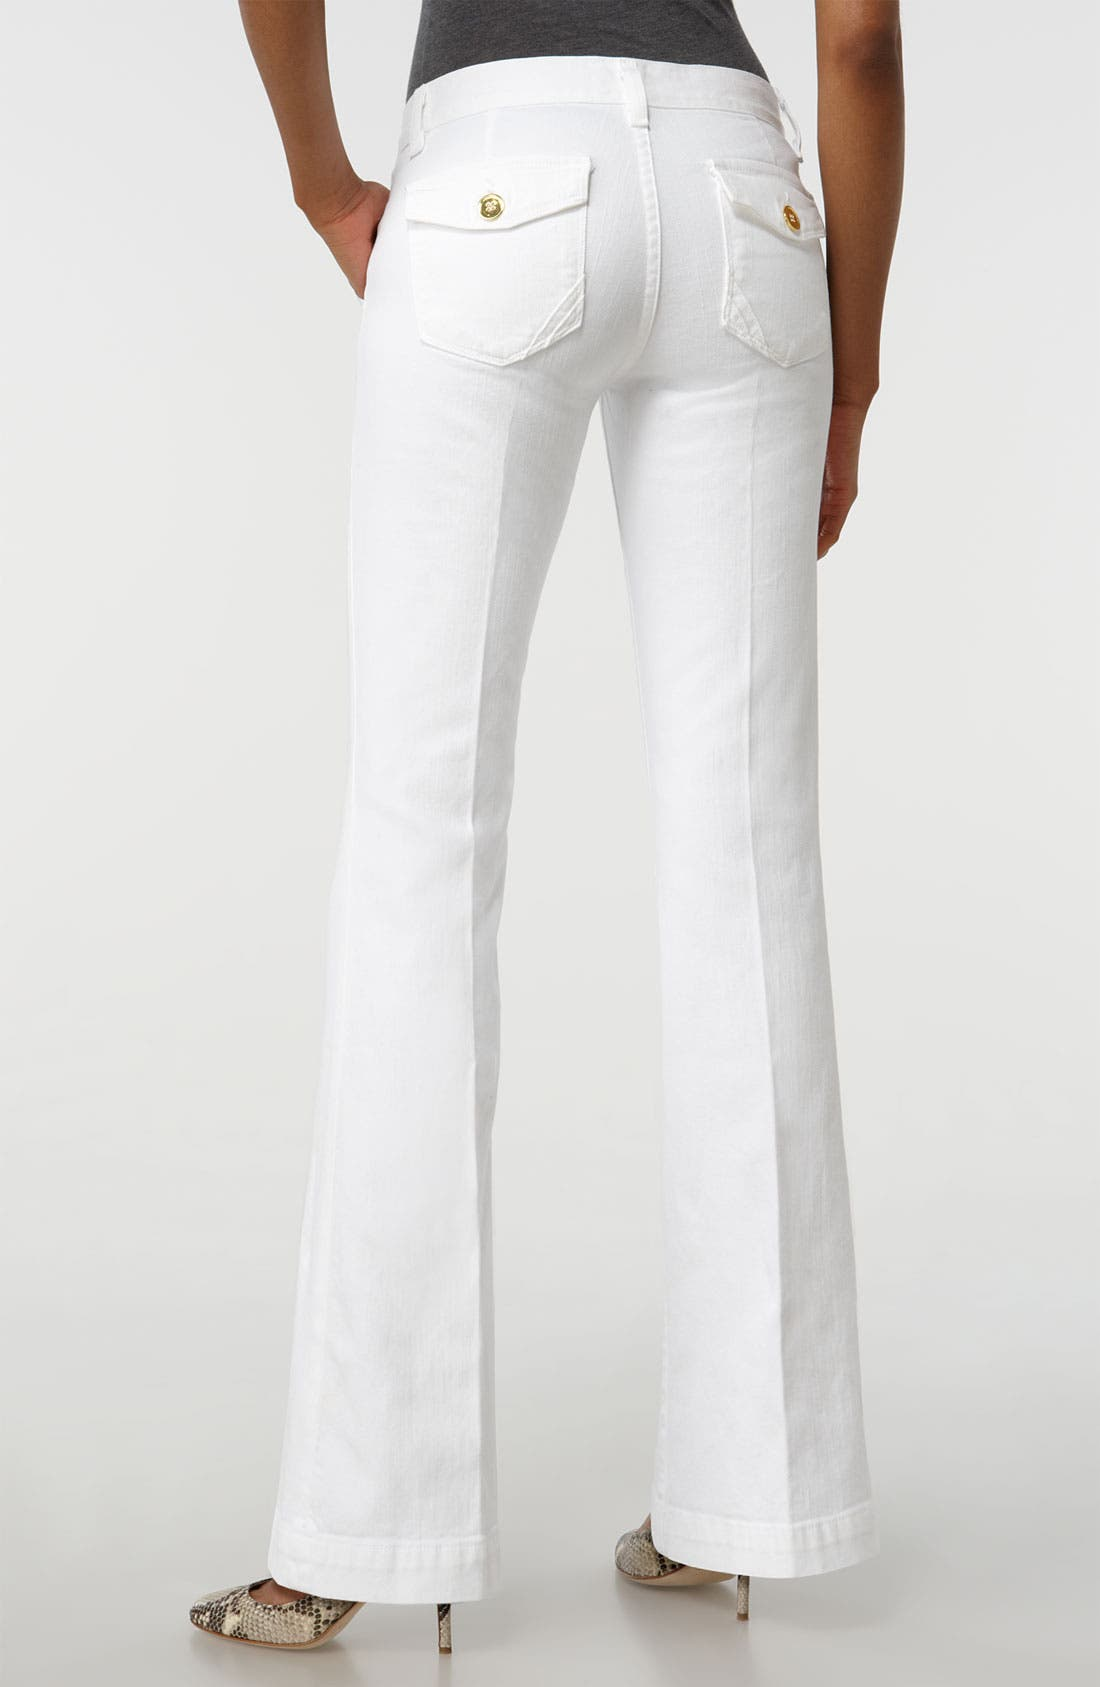 'Pascale' Stretch Trouser Jeans,                             Alternate thumbnail 2, color,                             100